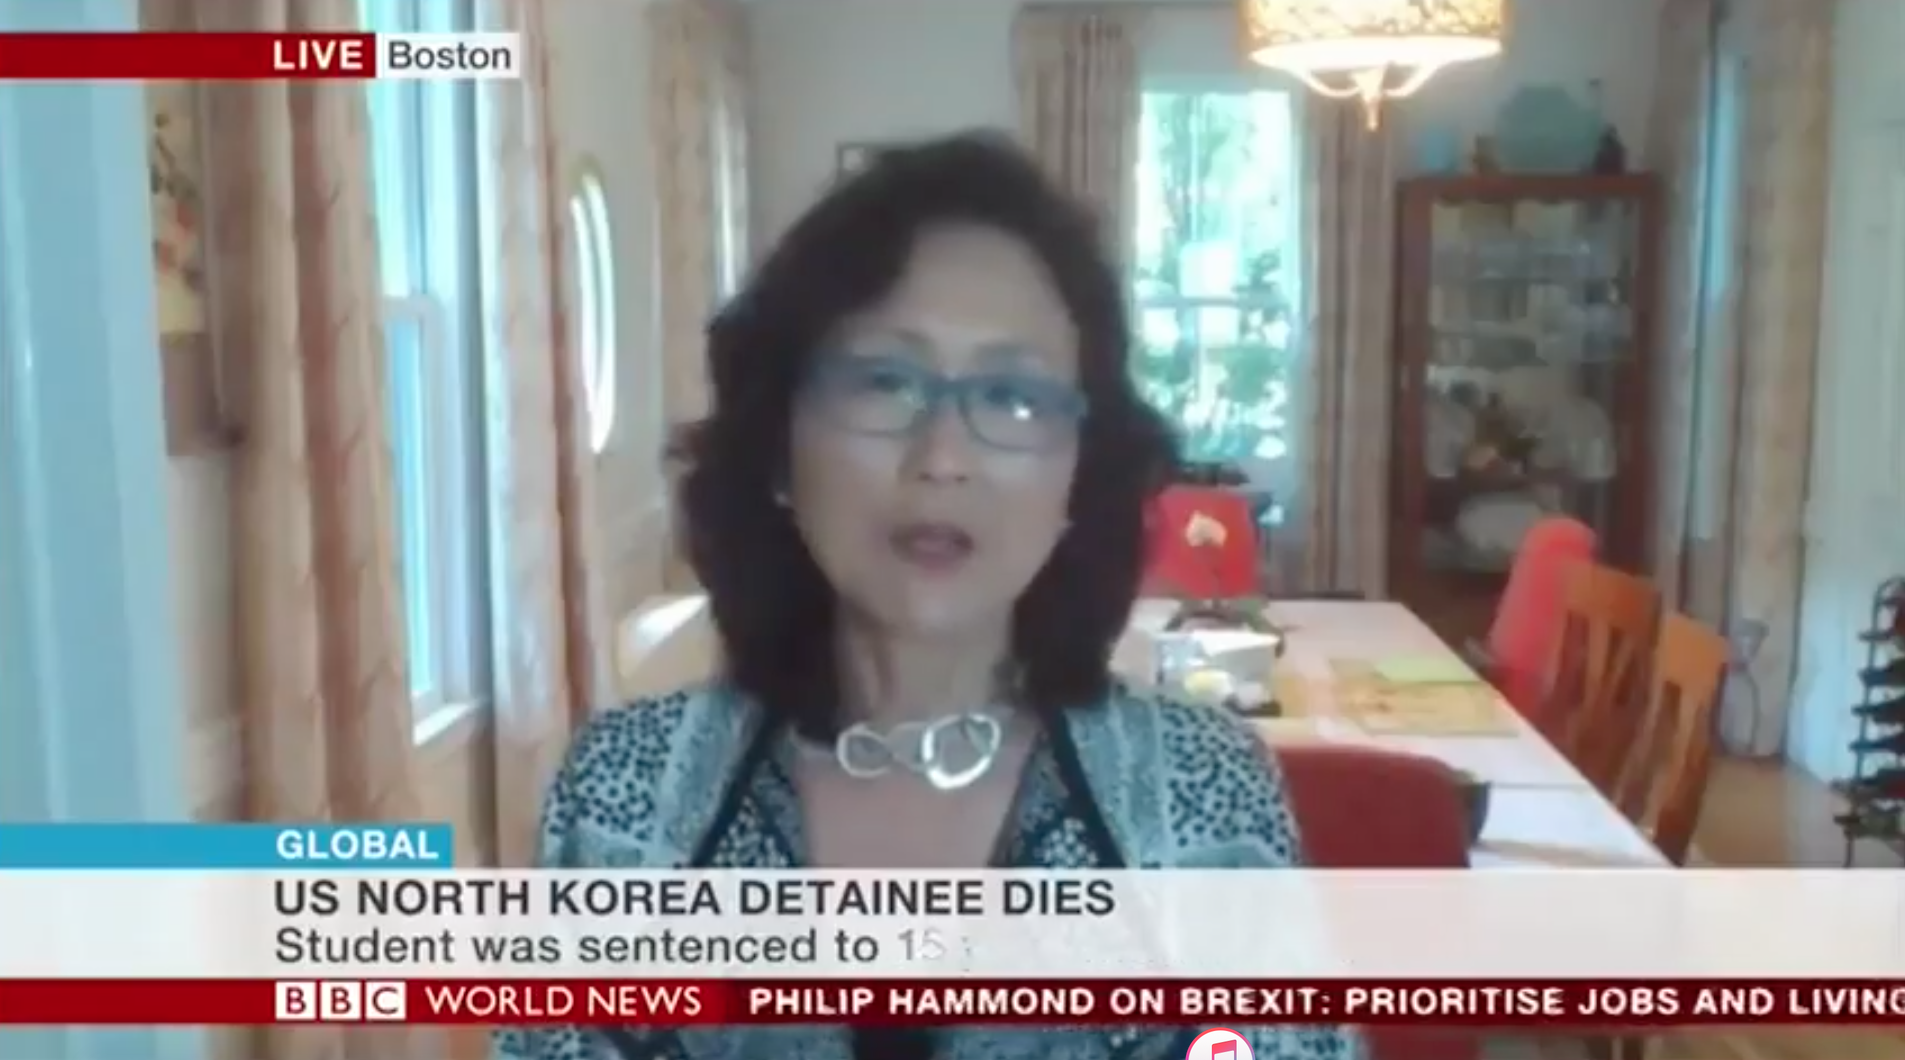 Katharine H.S. Moon interviewed by the BBC